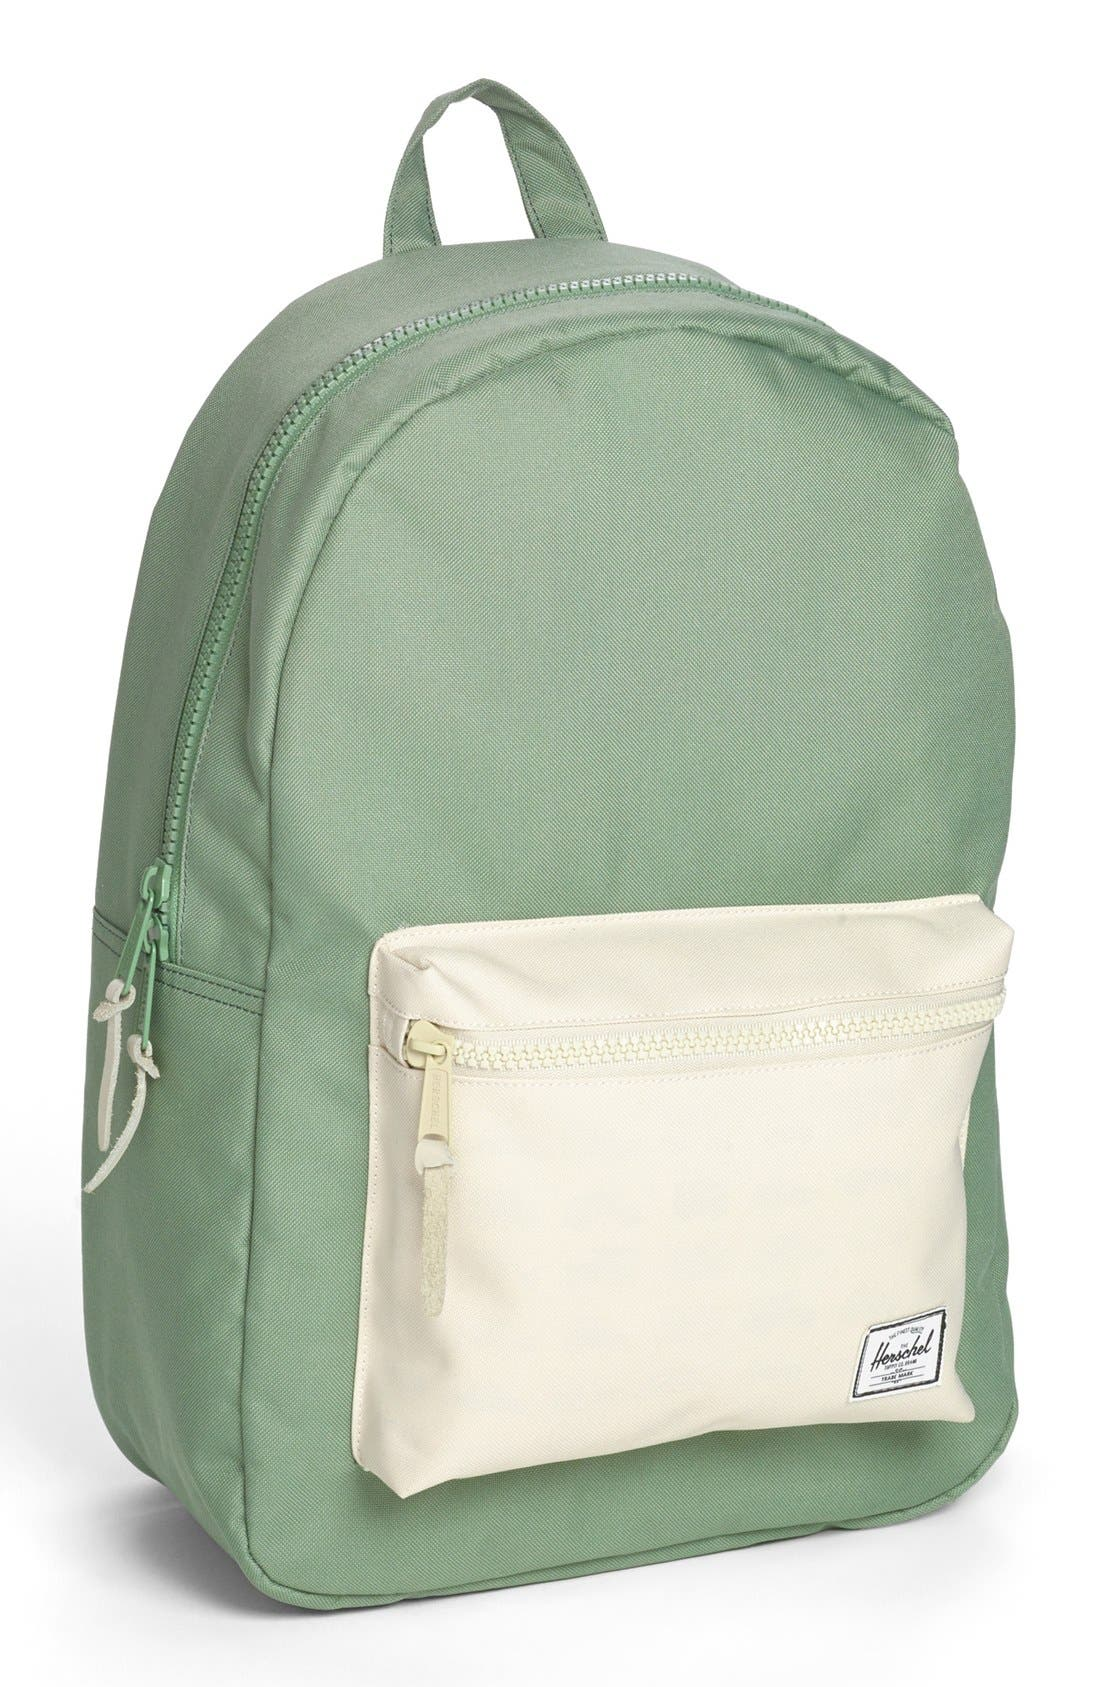 Main Image - Herschel Supply Co. 'Settlement - Rad Cars with Rad Surfboards Collection' Backpack